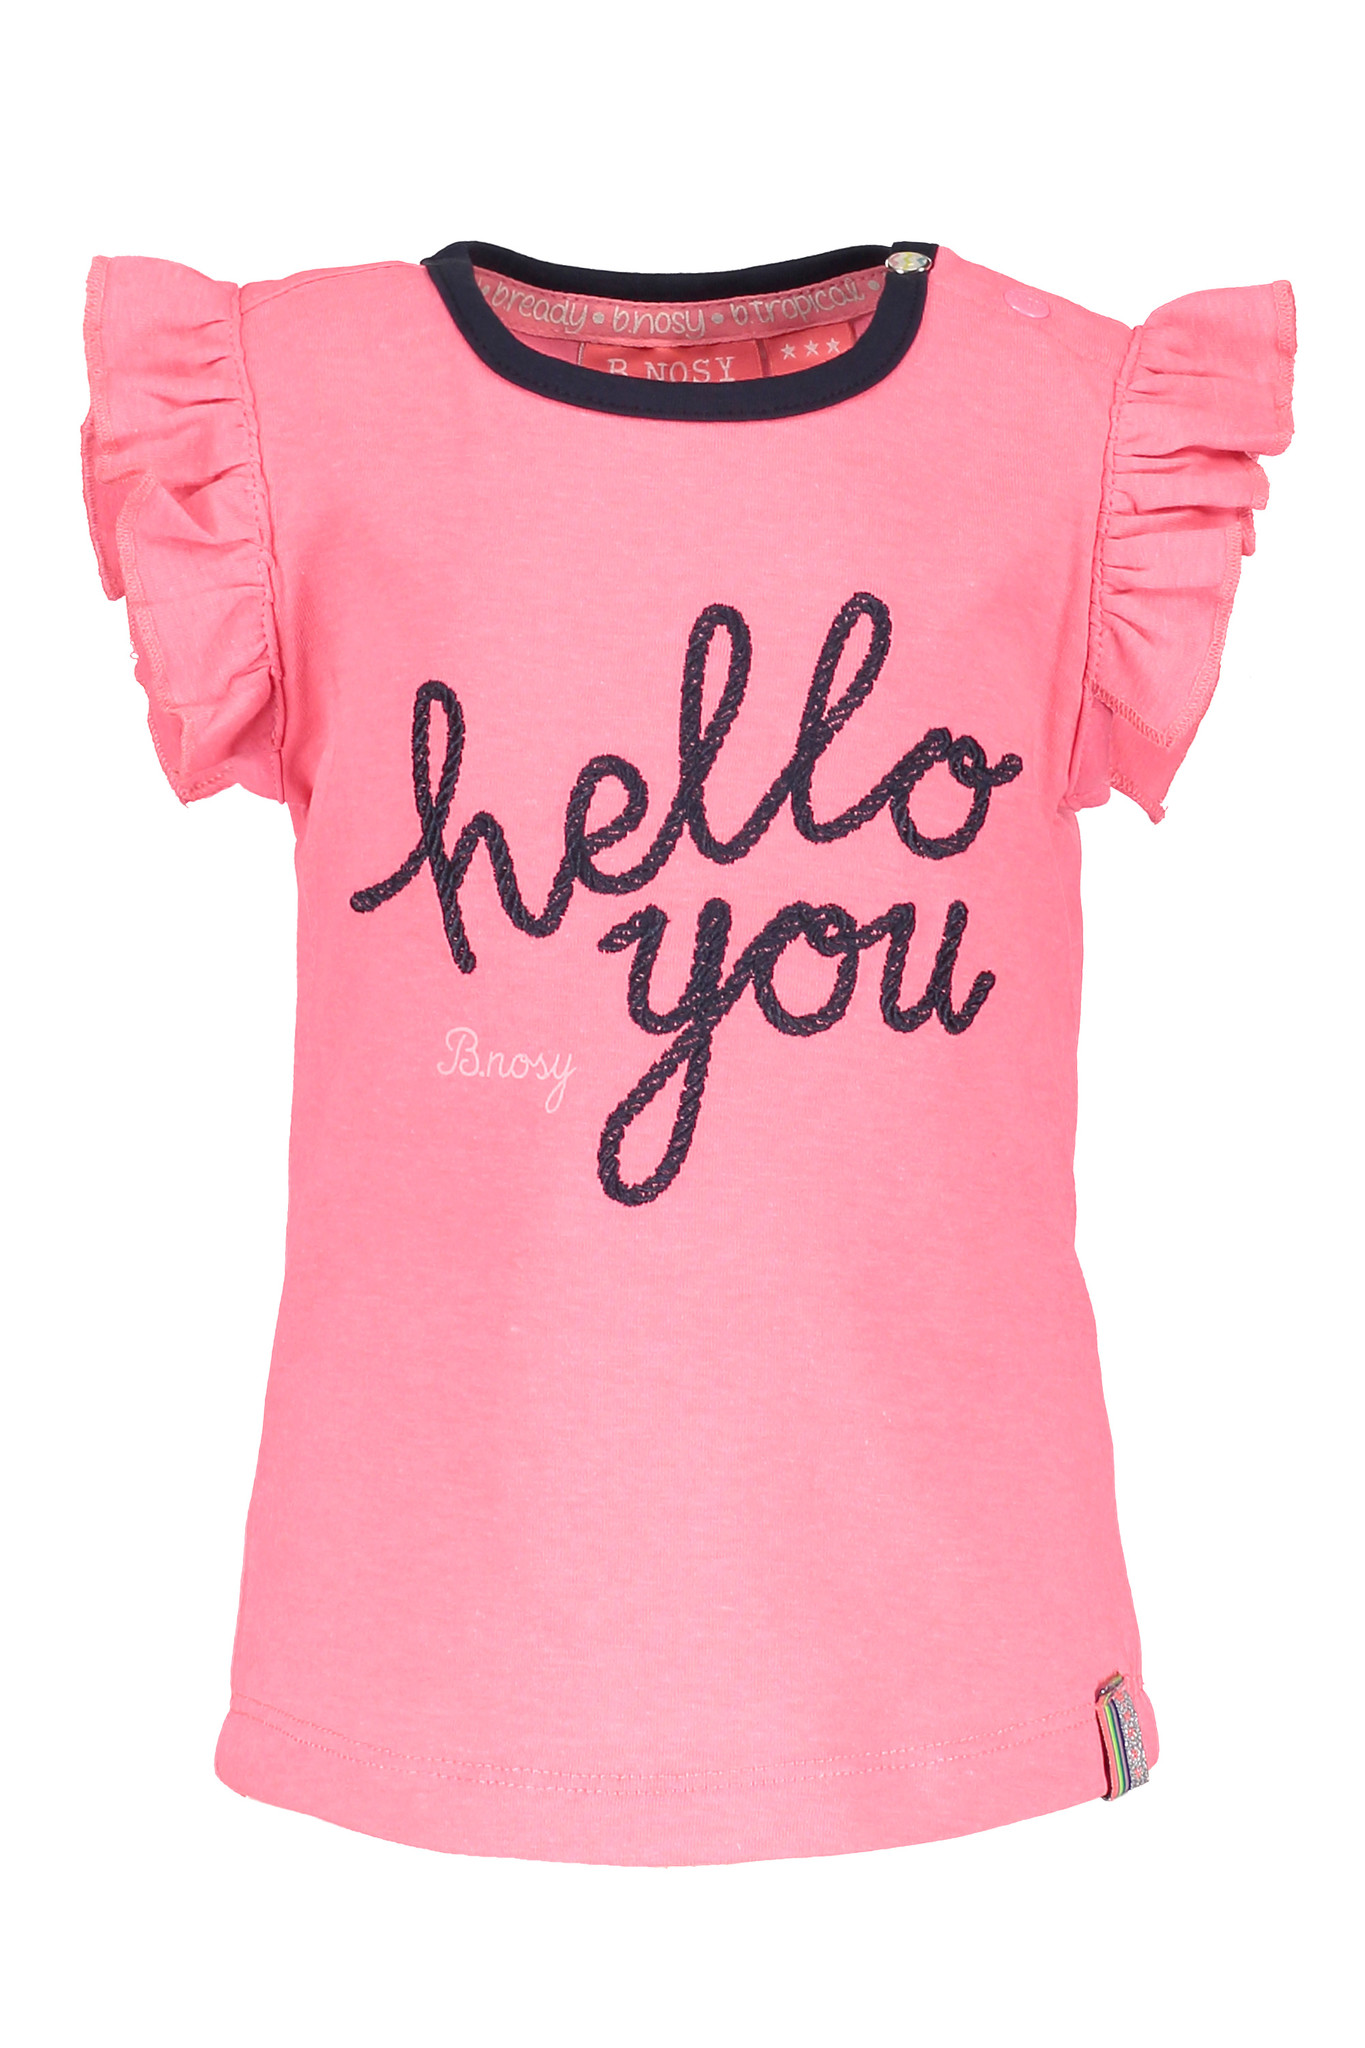 B.Nosy B.Nosy T-shirt with hello you embroidery candy